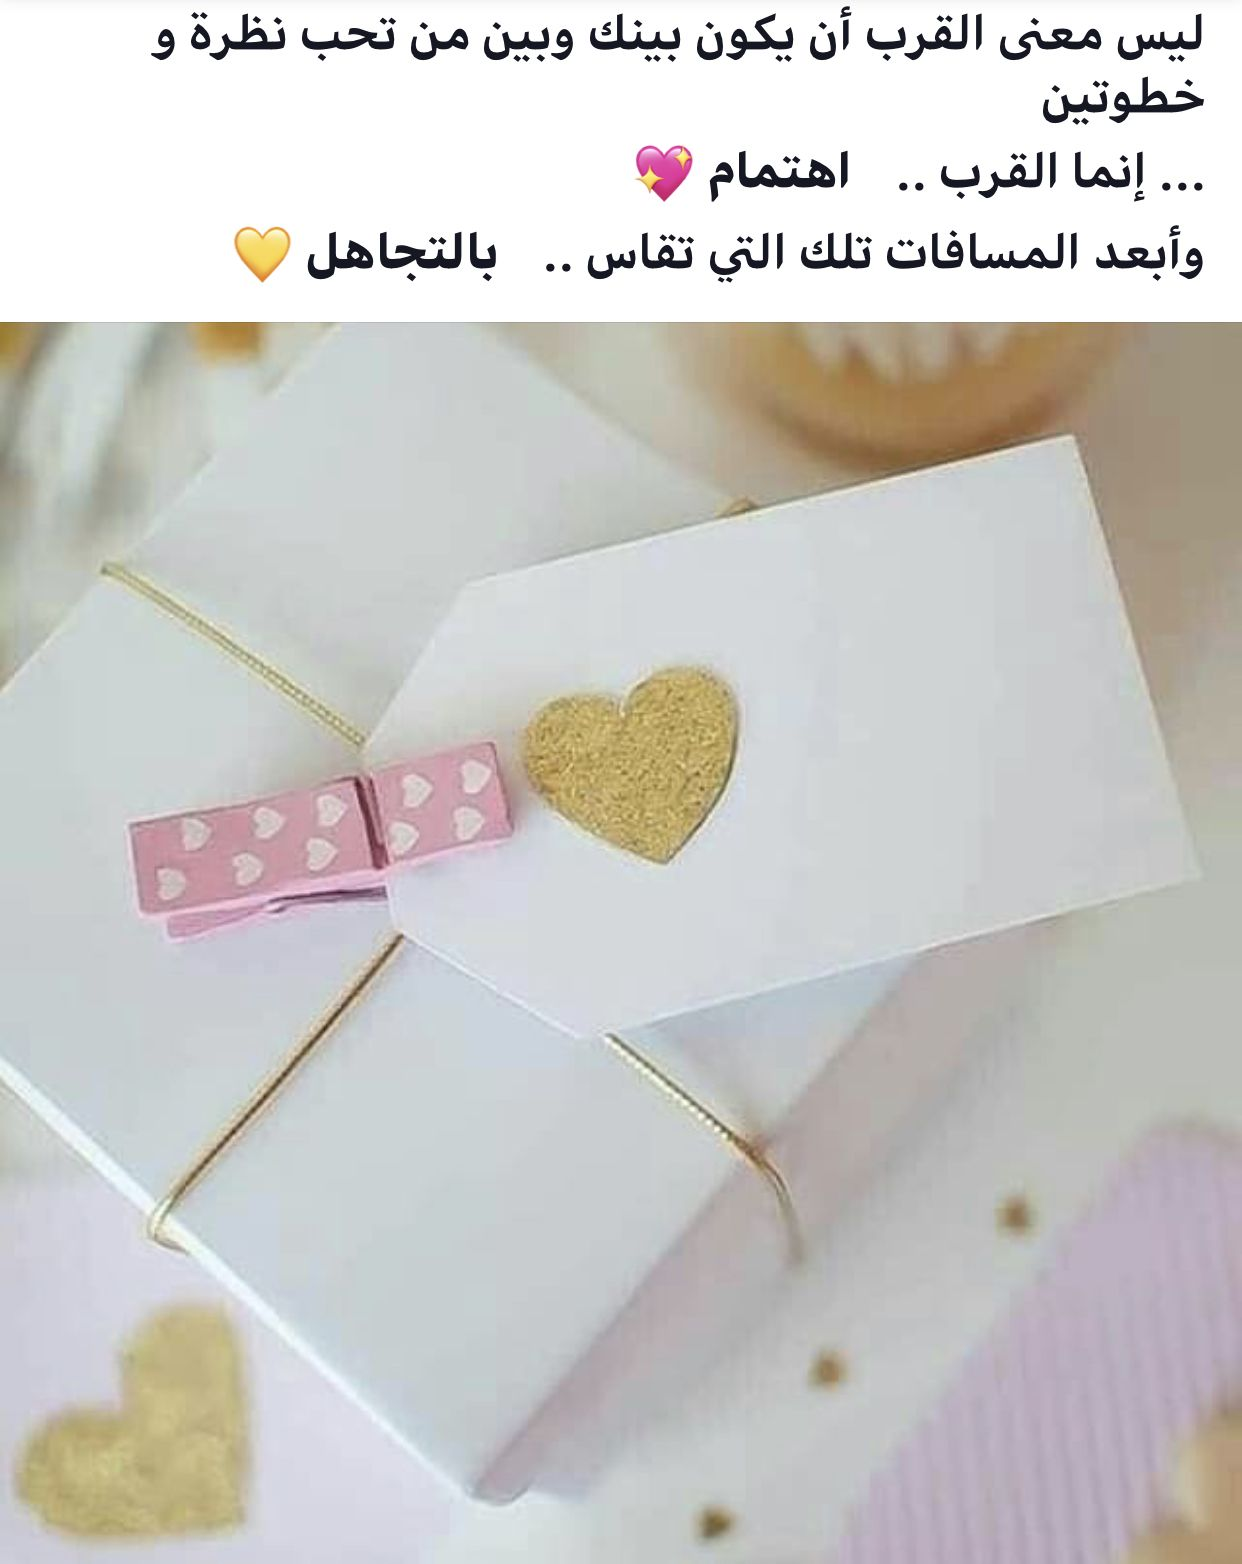 Pin By حلا On حلوووش Place Card Holders Place Cards Arabic Love Quotes